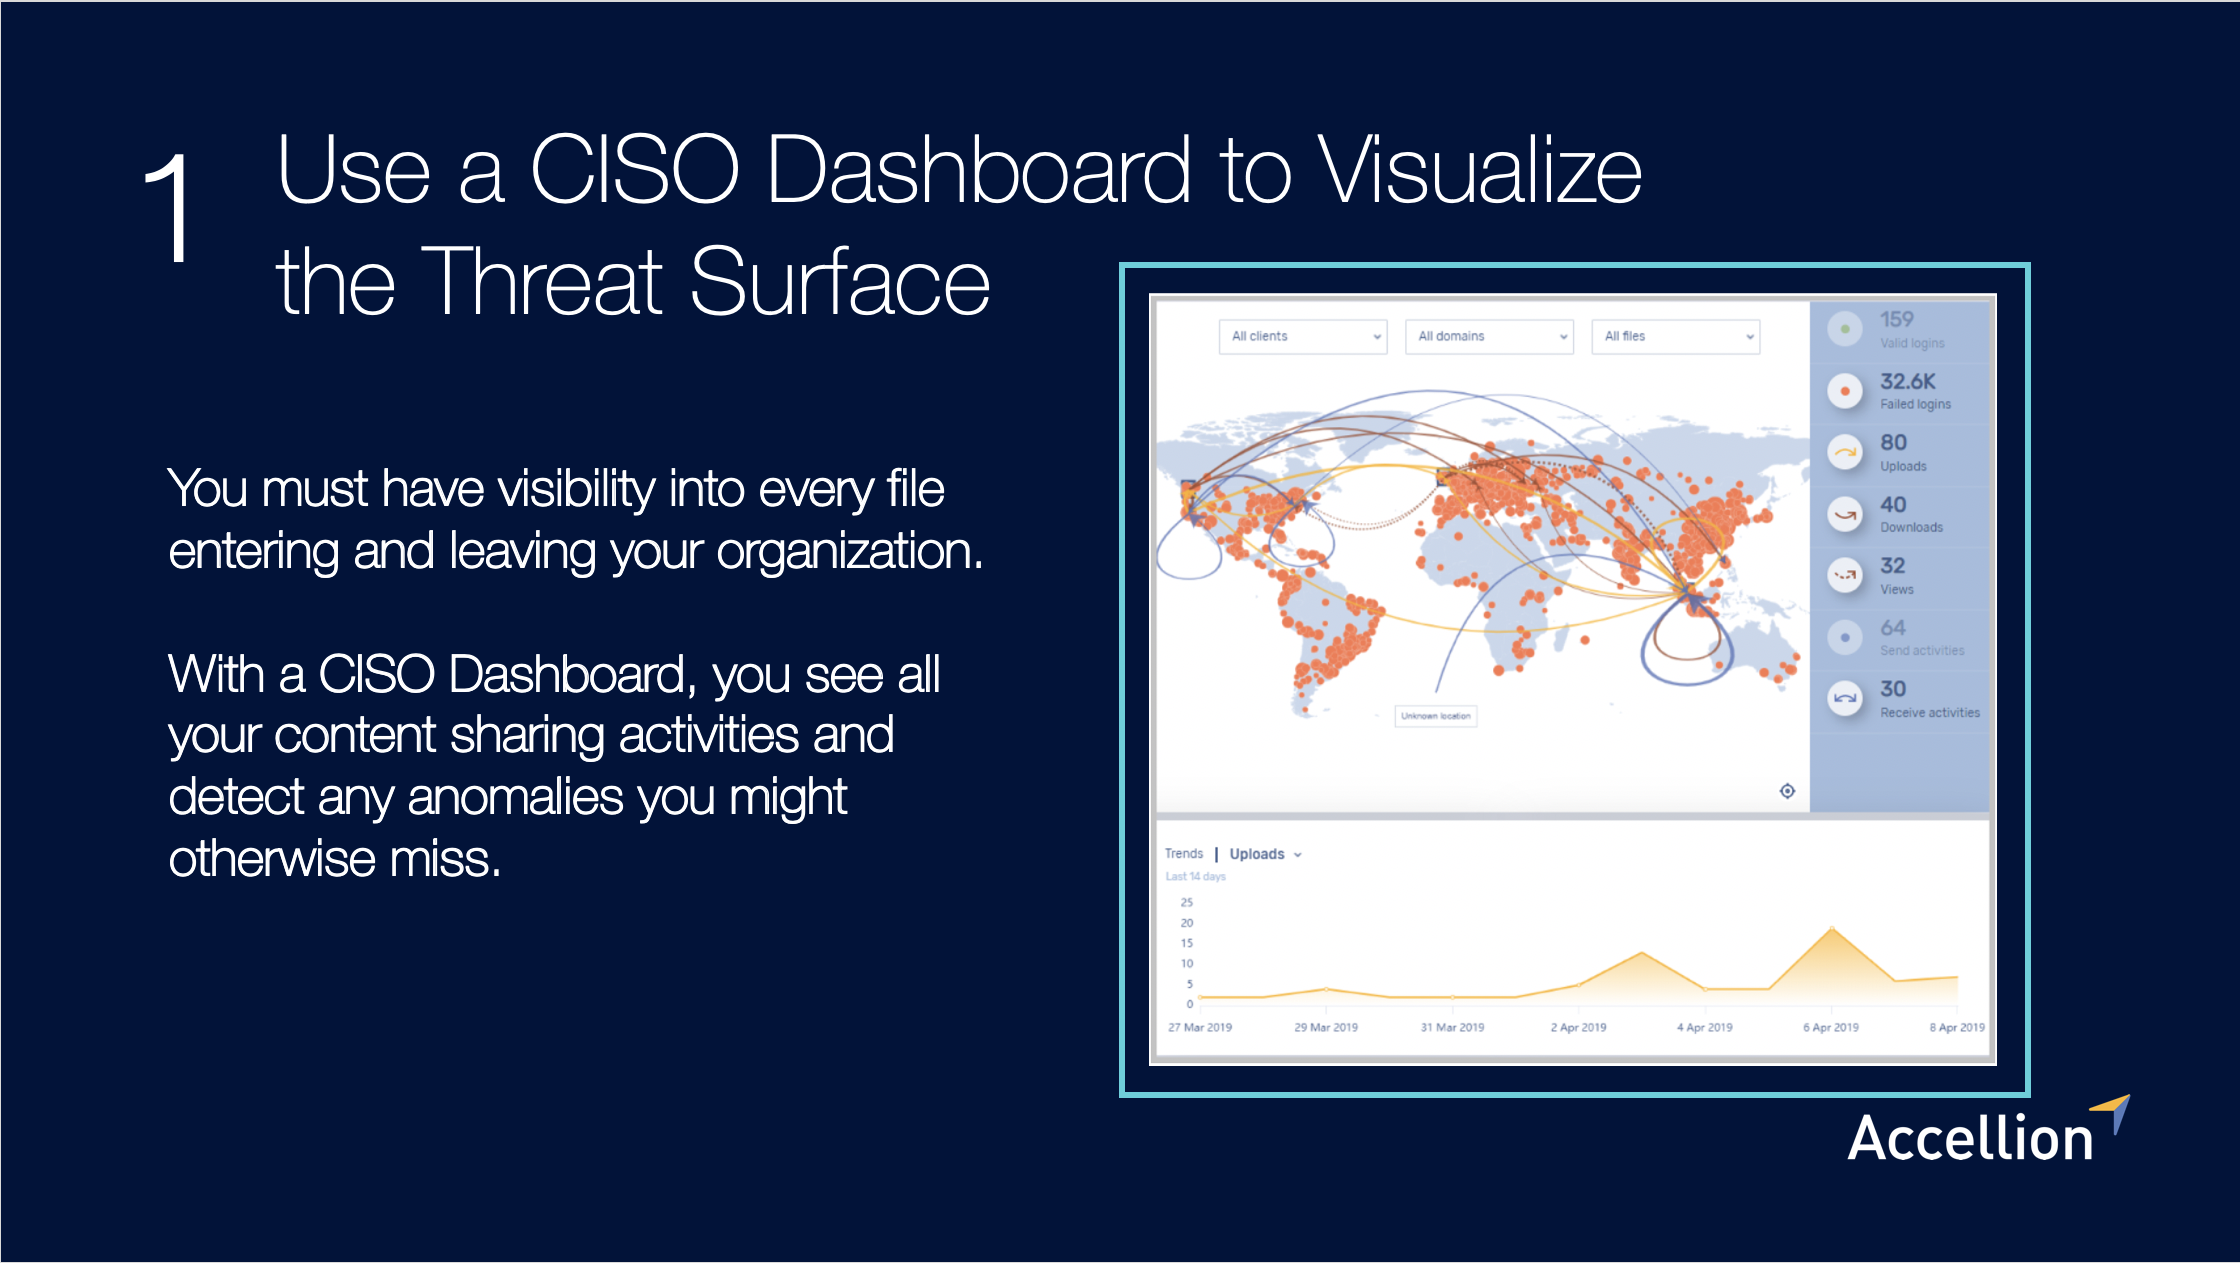 Use a CISO Dashboard to Visualize the Threat Surface